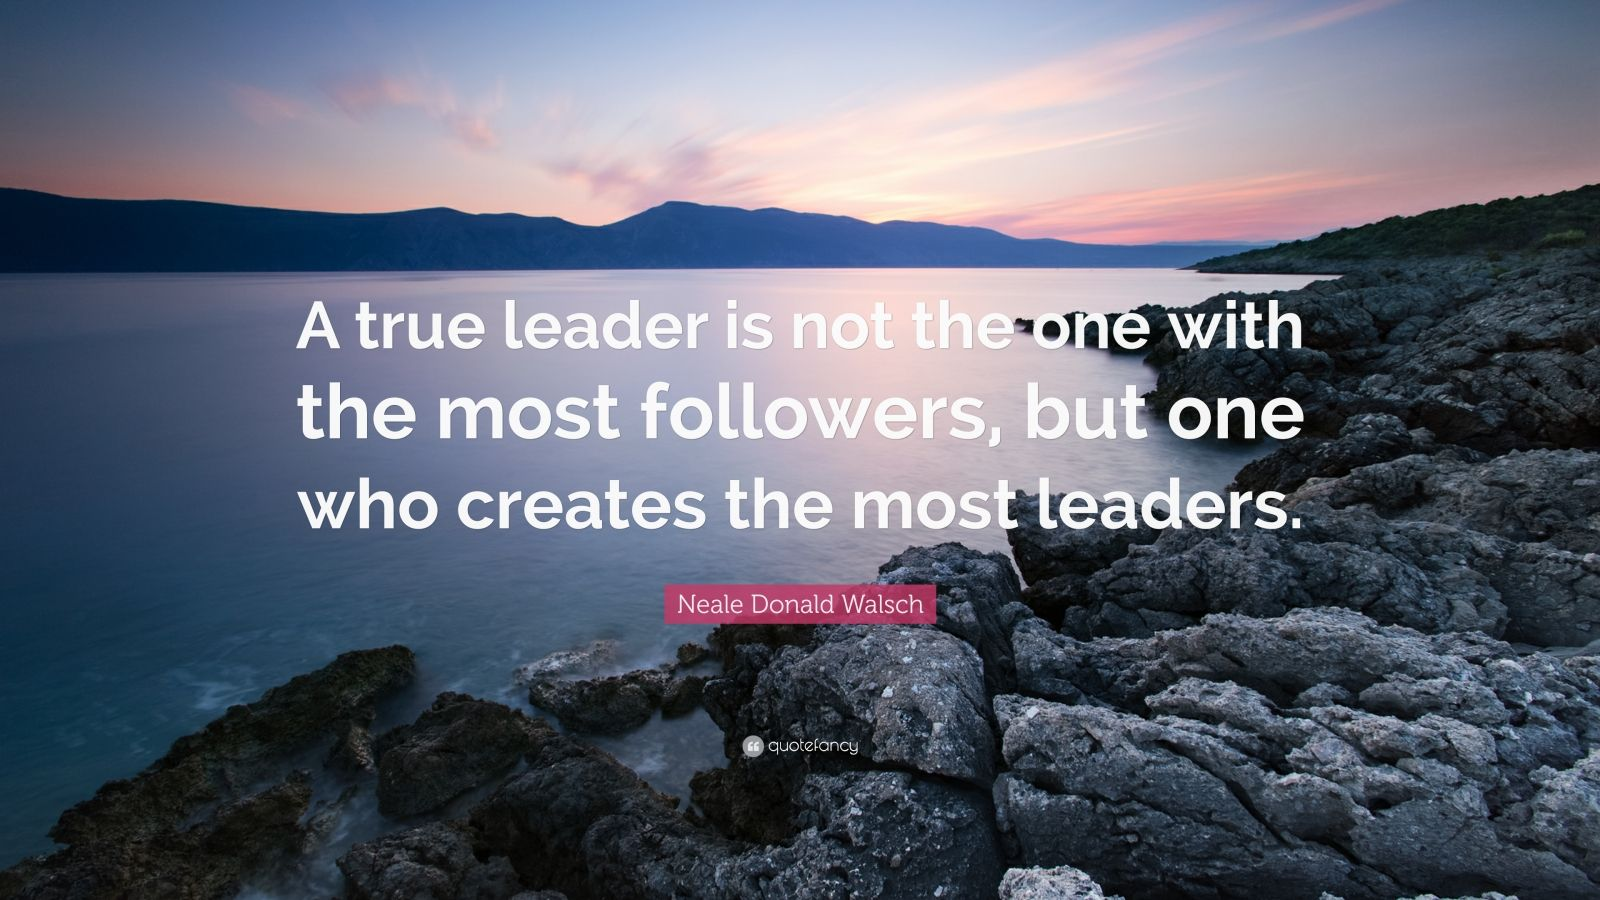 """Neale Donald Walsch Quote: """"A true leader is not the one with the most followers, but one who creates the most leaders."""""""